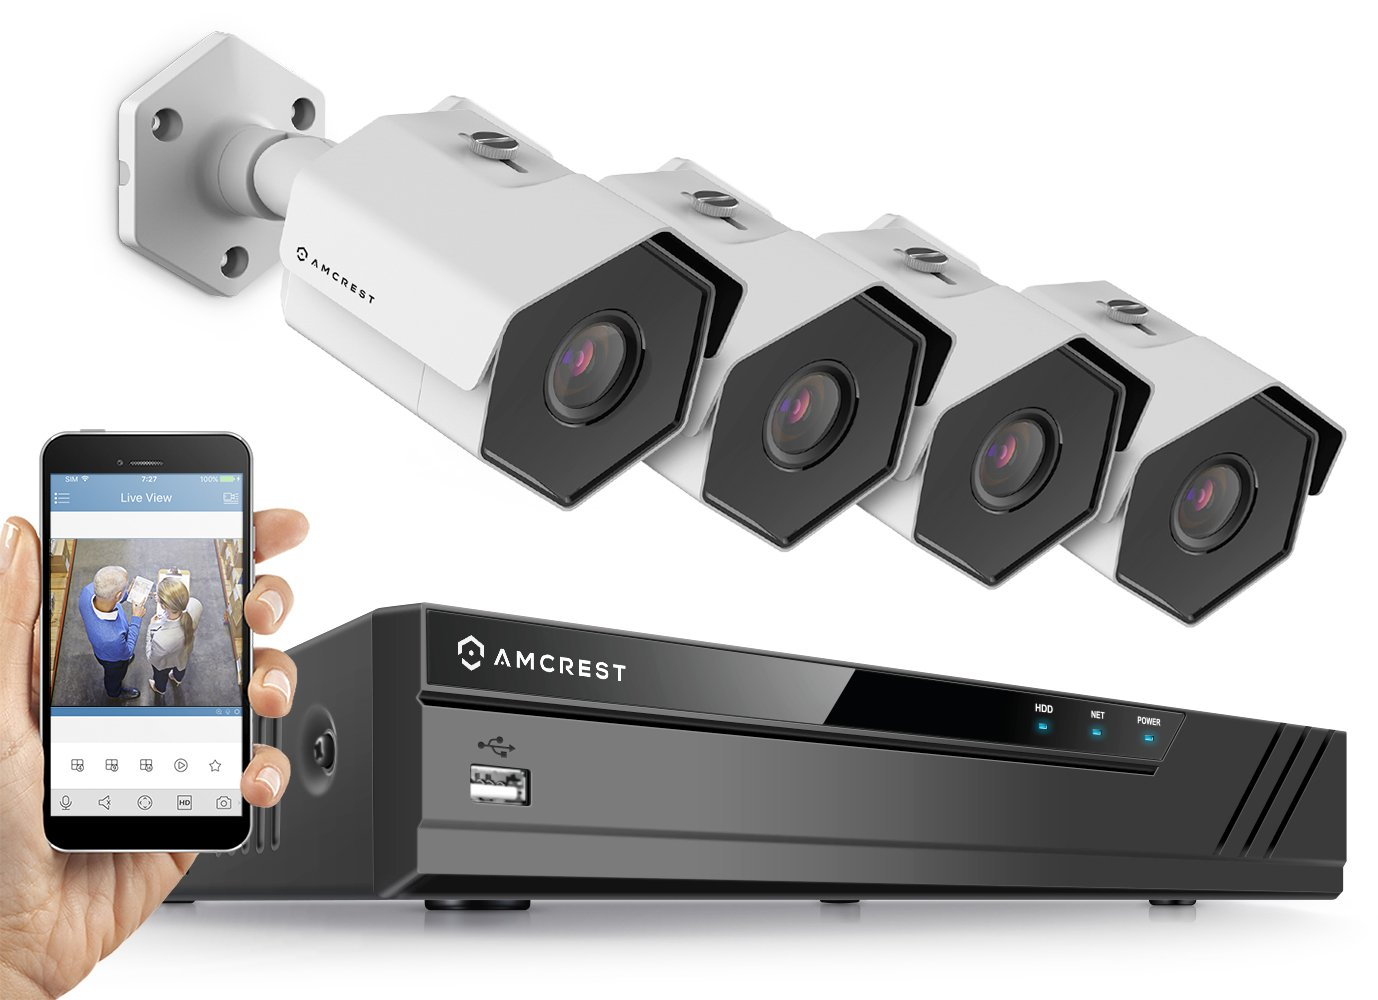 Amcrest 8CH Plug & Play H.265 4K NVR 4MP 1440P Security Camera System, (4) x 4-Megapixel 3.6mm Wide Angle Lens Weatherproof Metal Bullet POE IP Cameras, 98 Feet Night Vision (White)